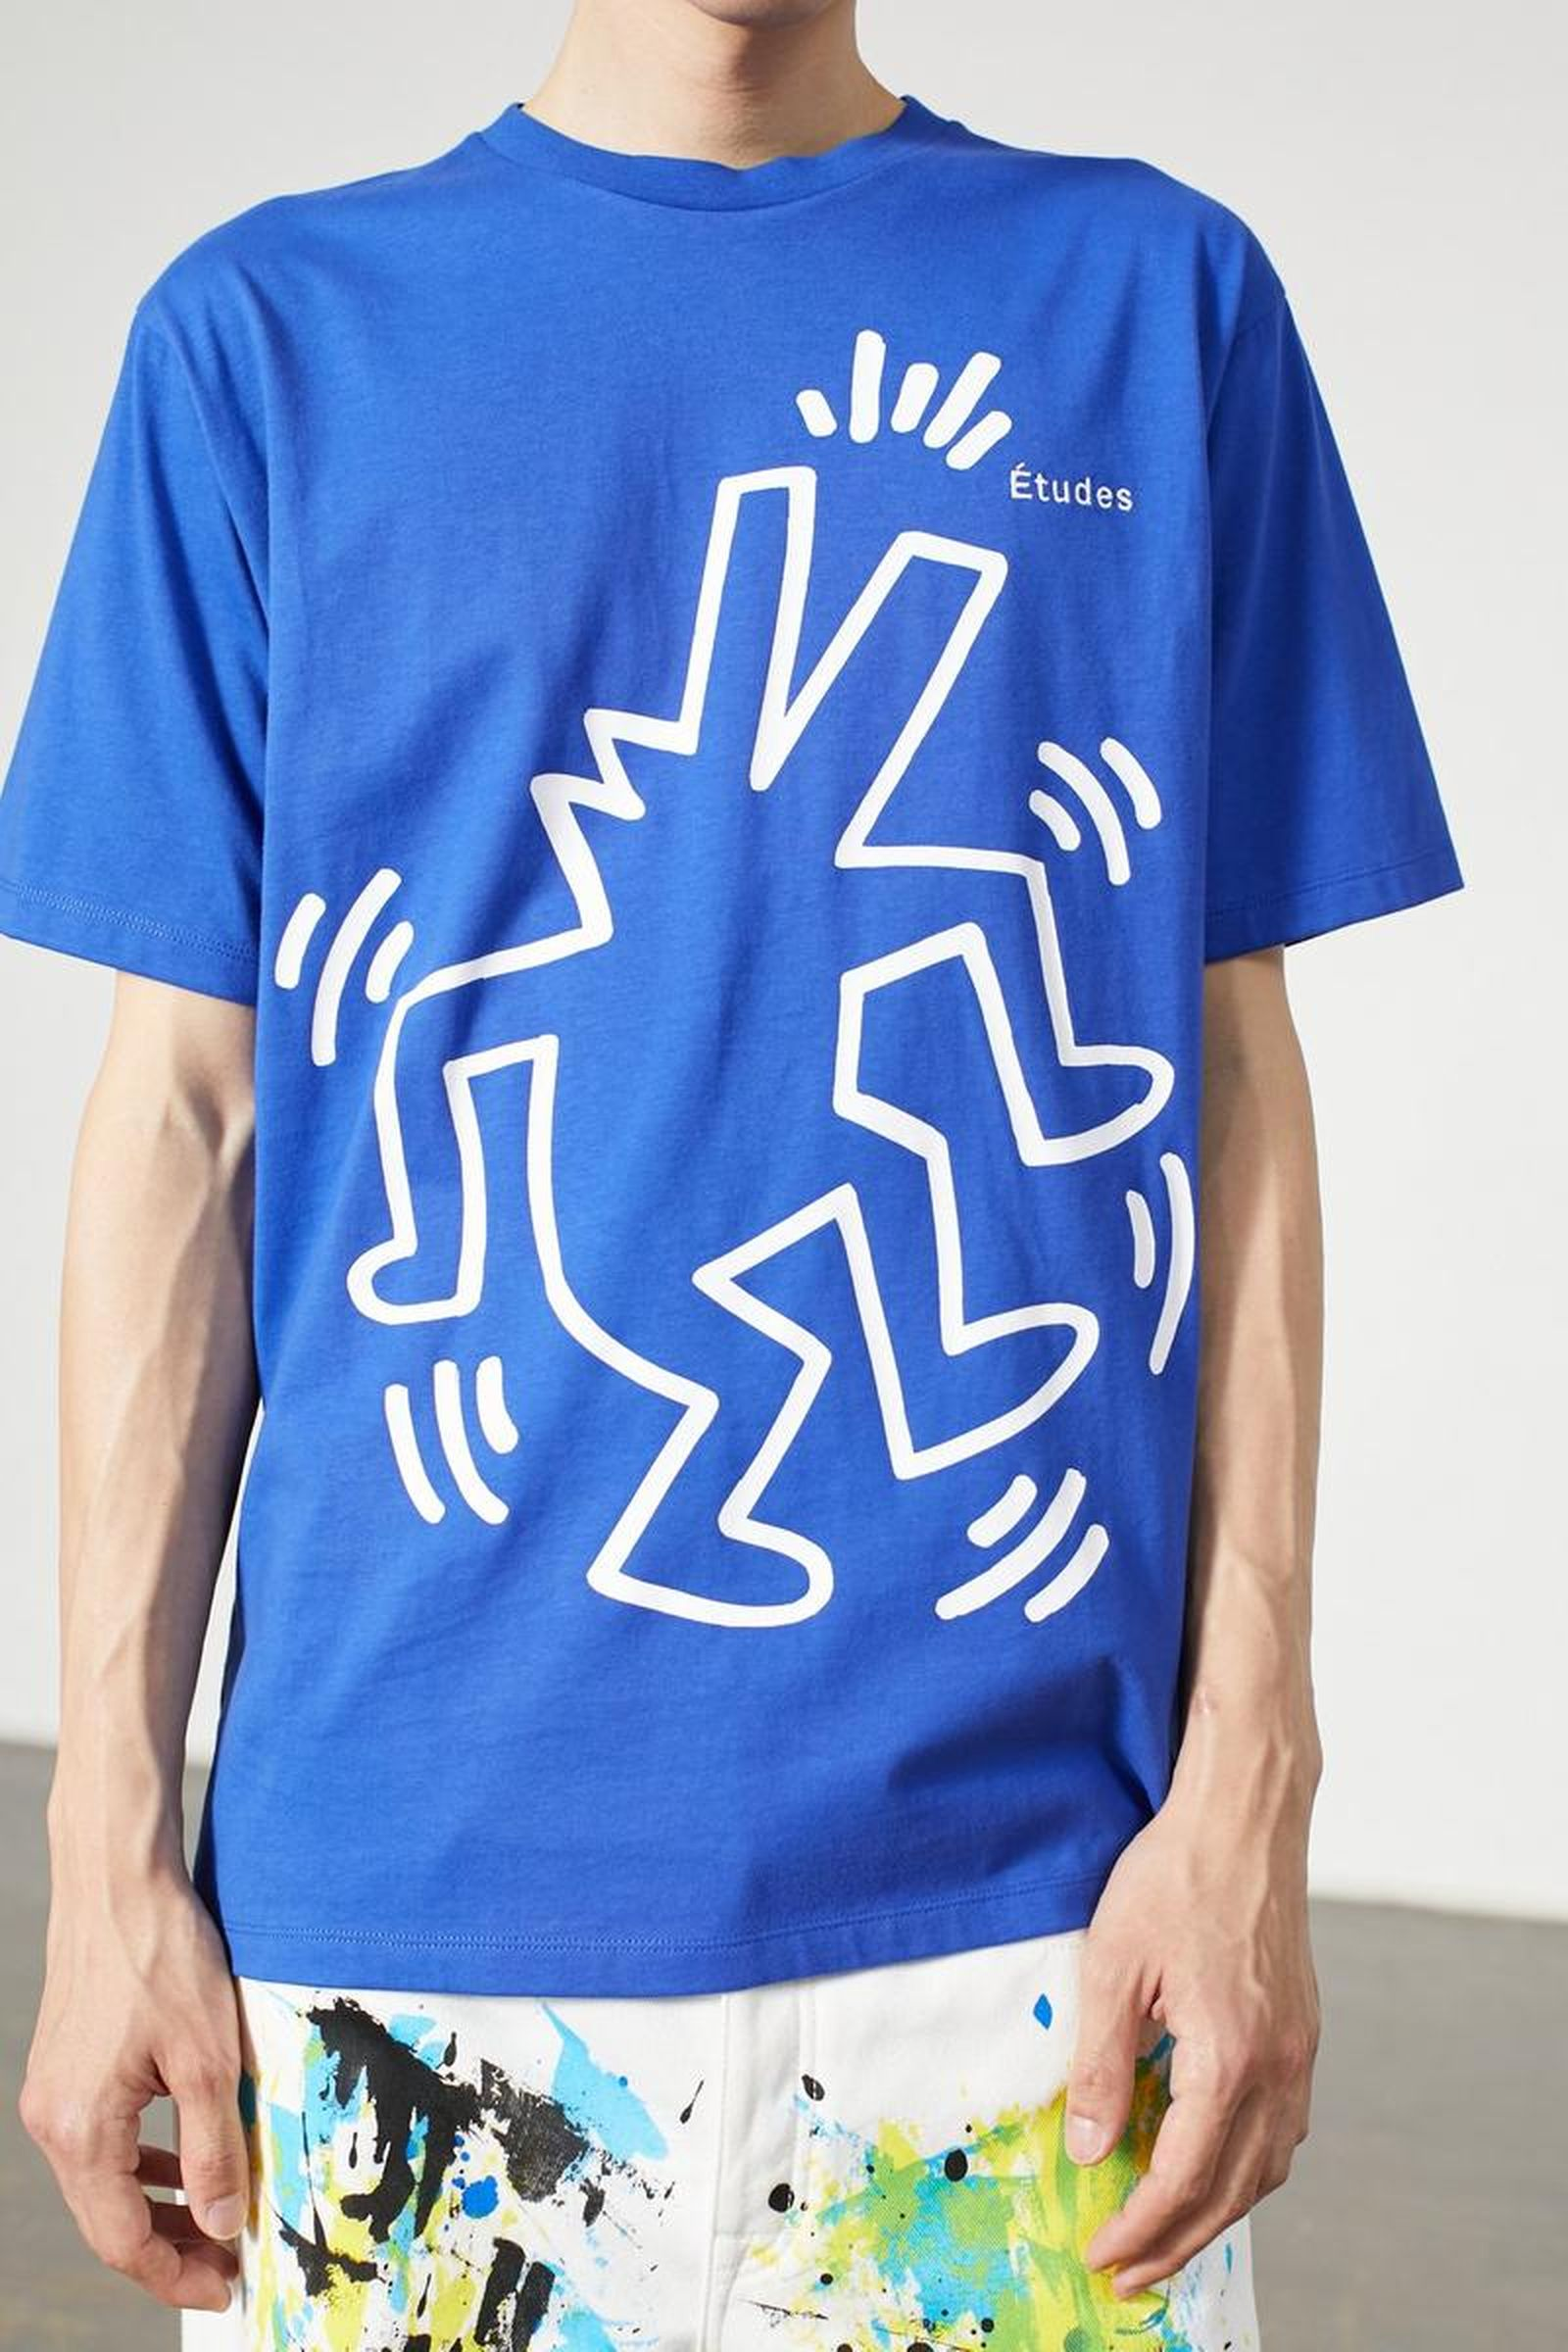 3etudes-keith-haring-ss20-collection